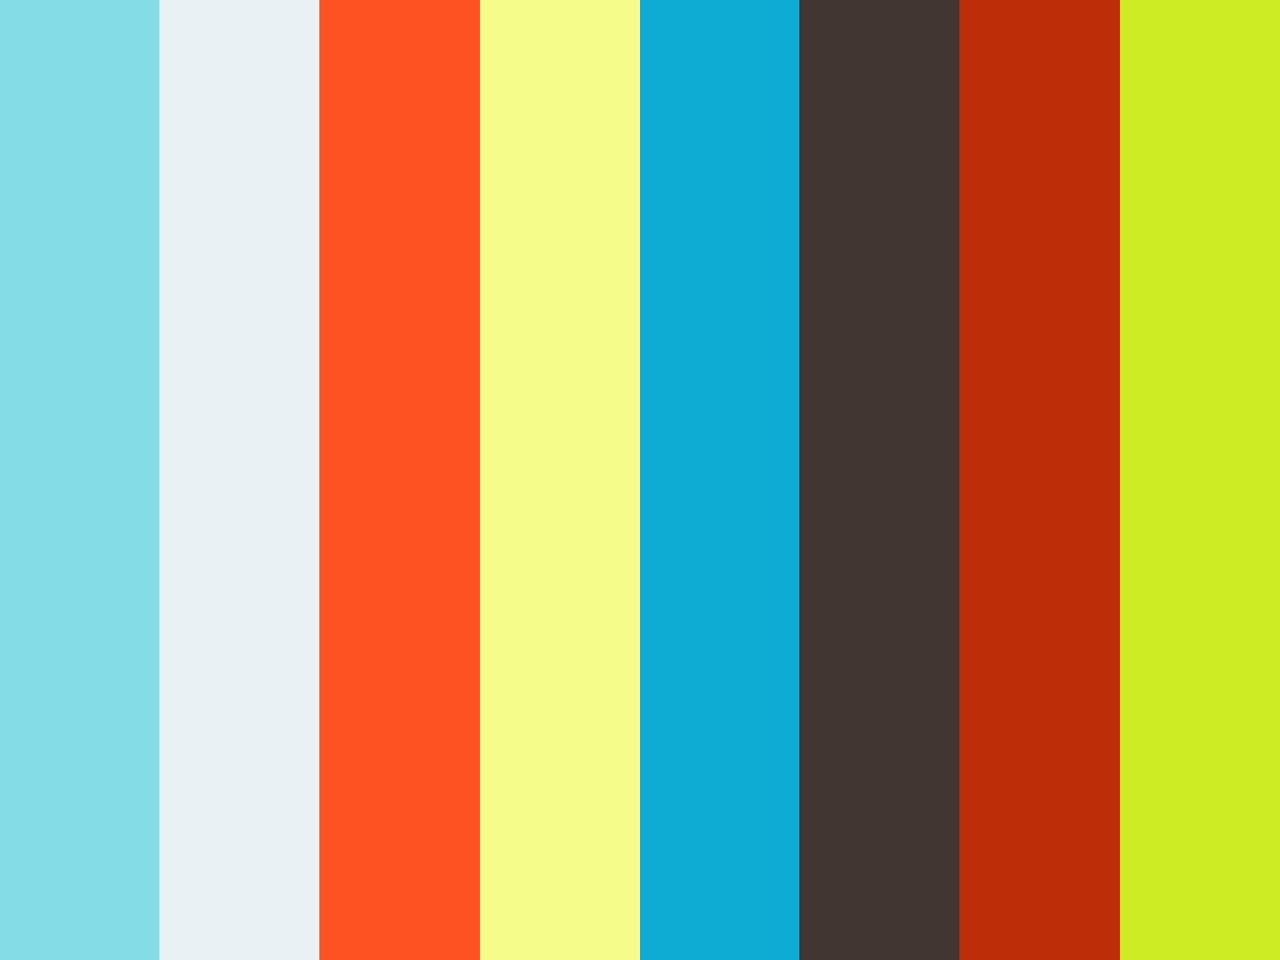 XPS tractor soilng simulation in Idle condition